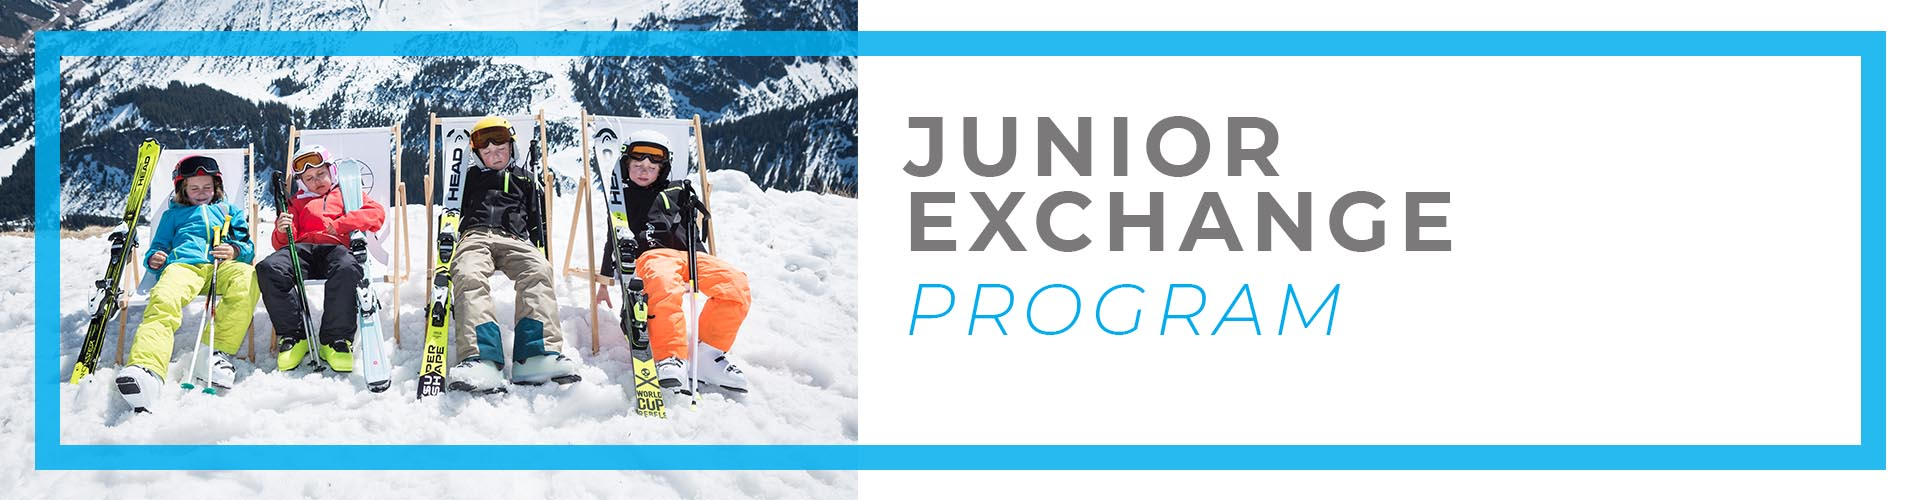 Junior exchange program